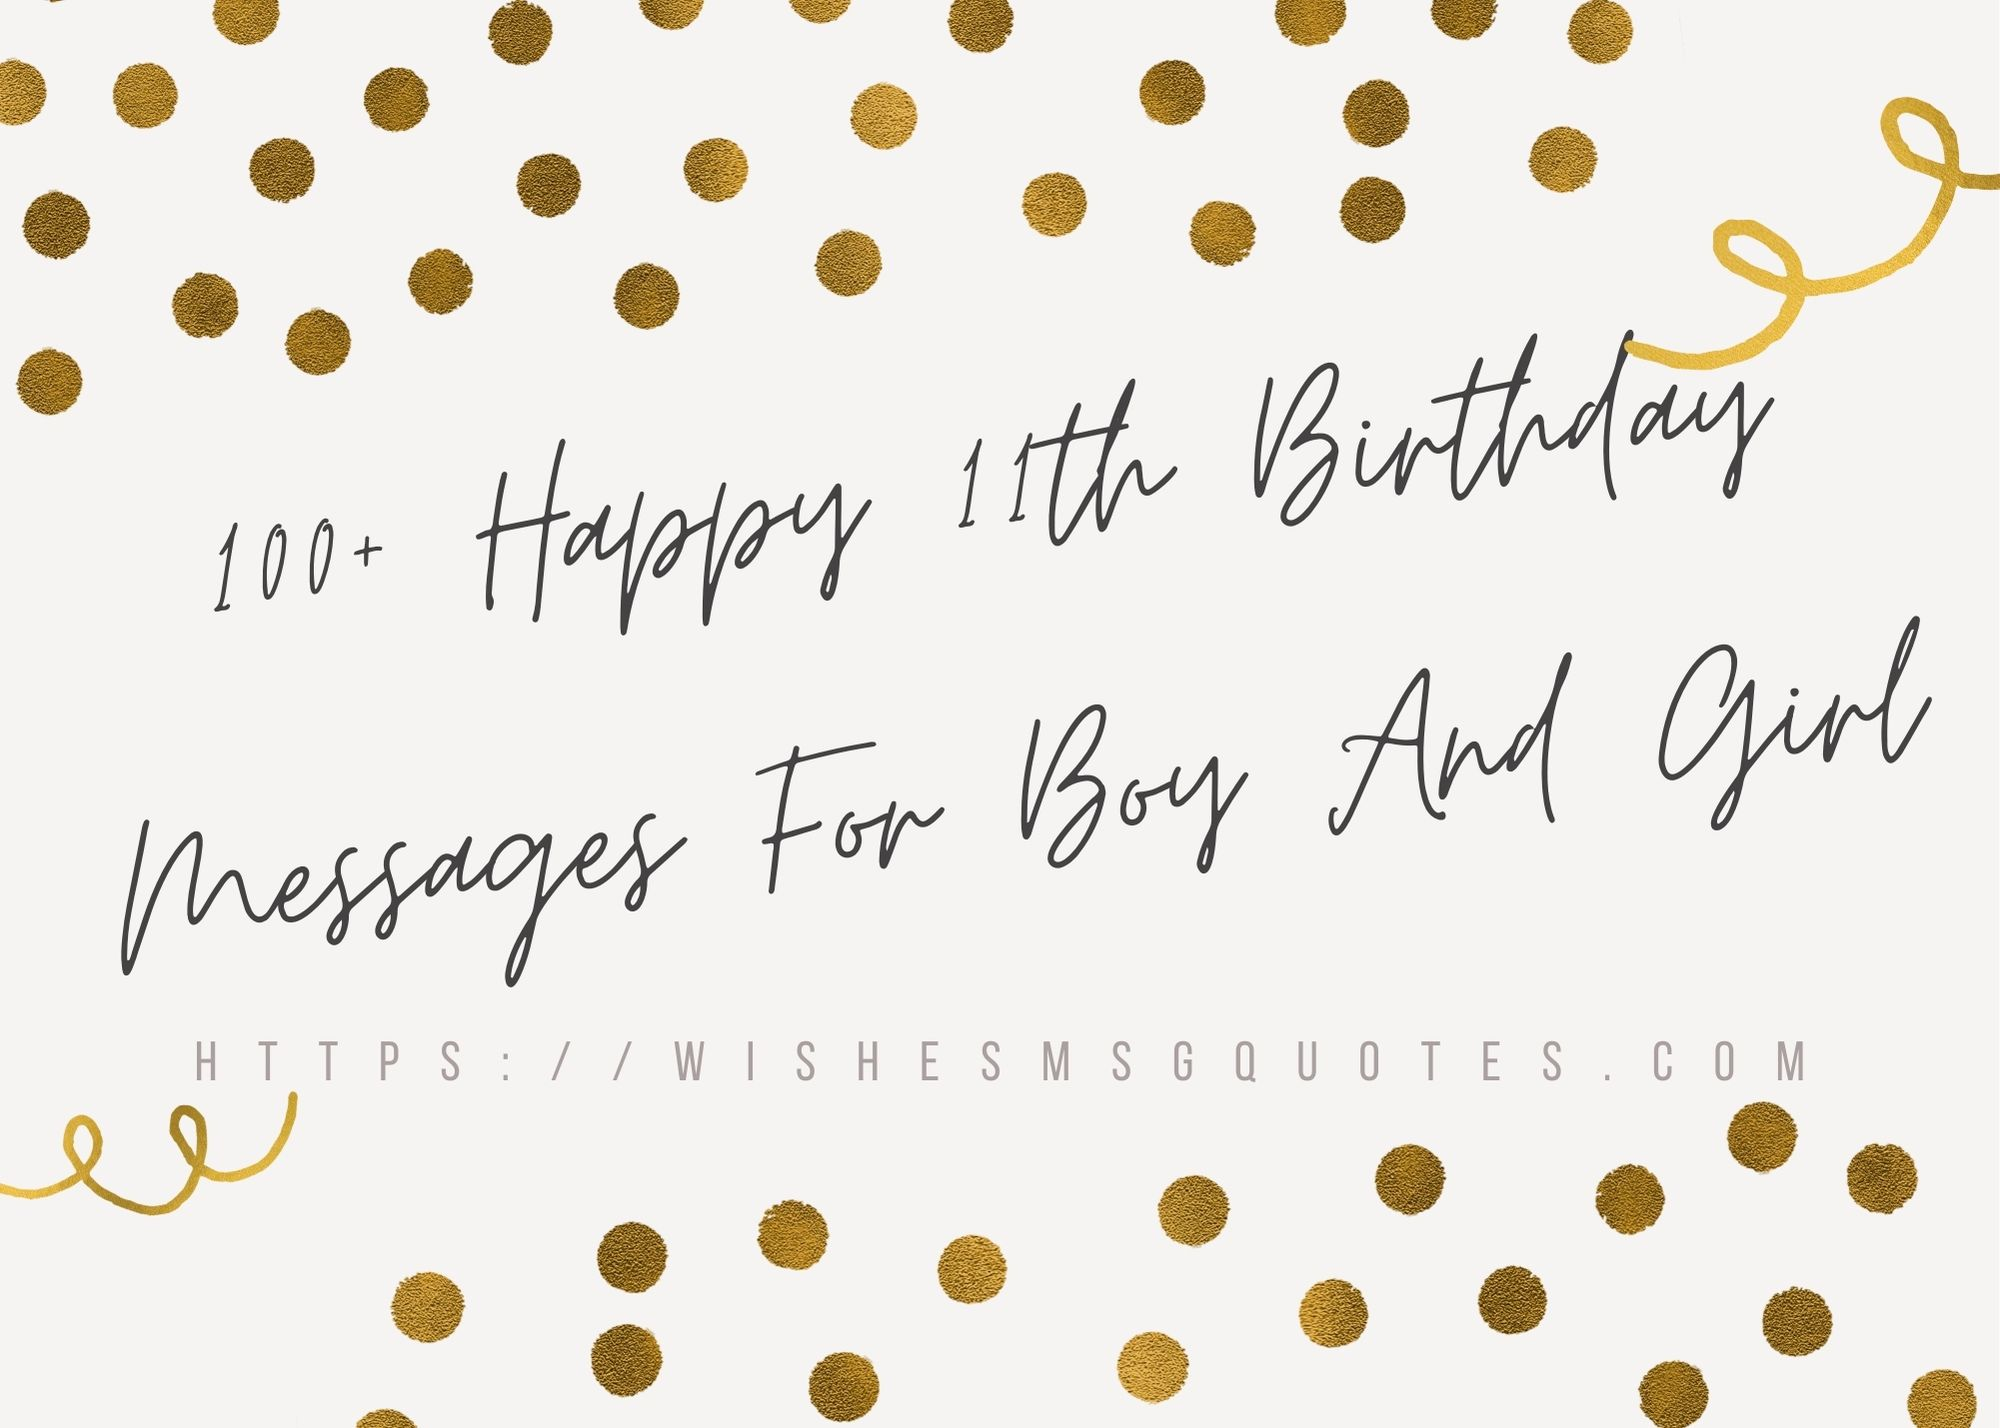 100+ Happy 11th Birthday Messages For Boy And Girl